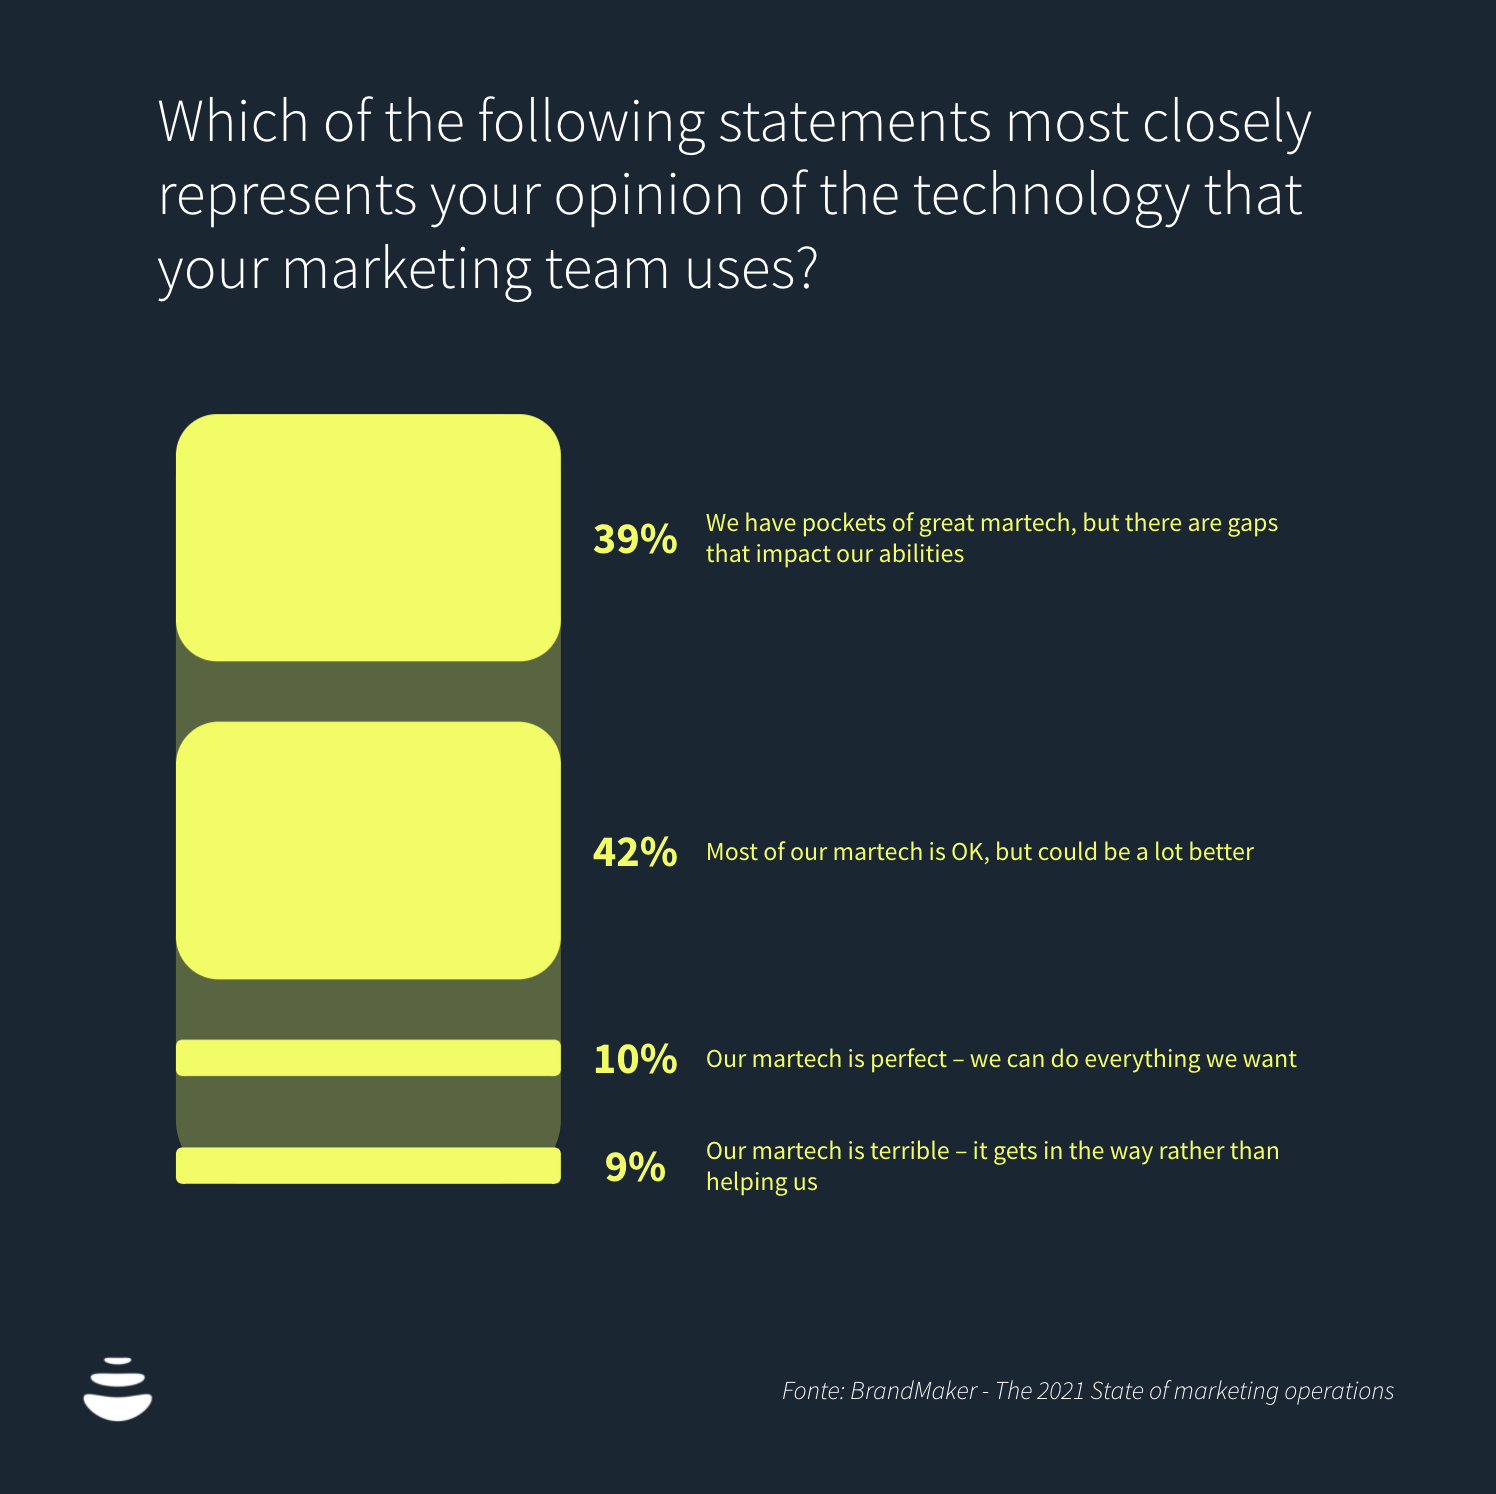 Which of the following statements most closely represents your opinion of the technology that your marketing team uses?